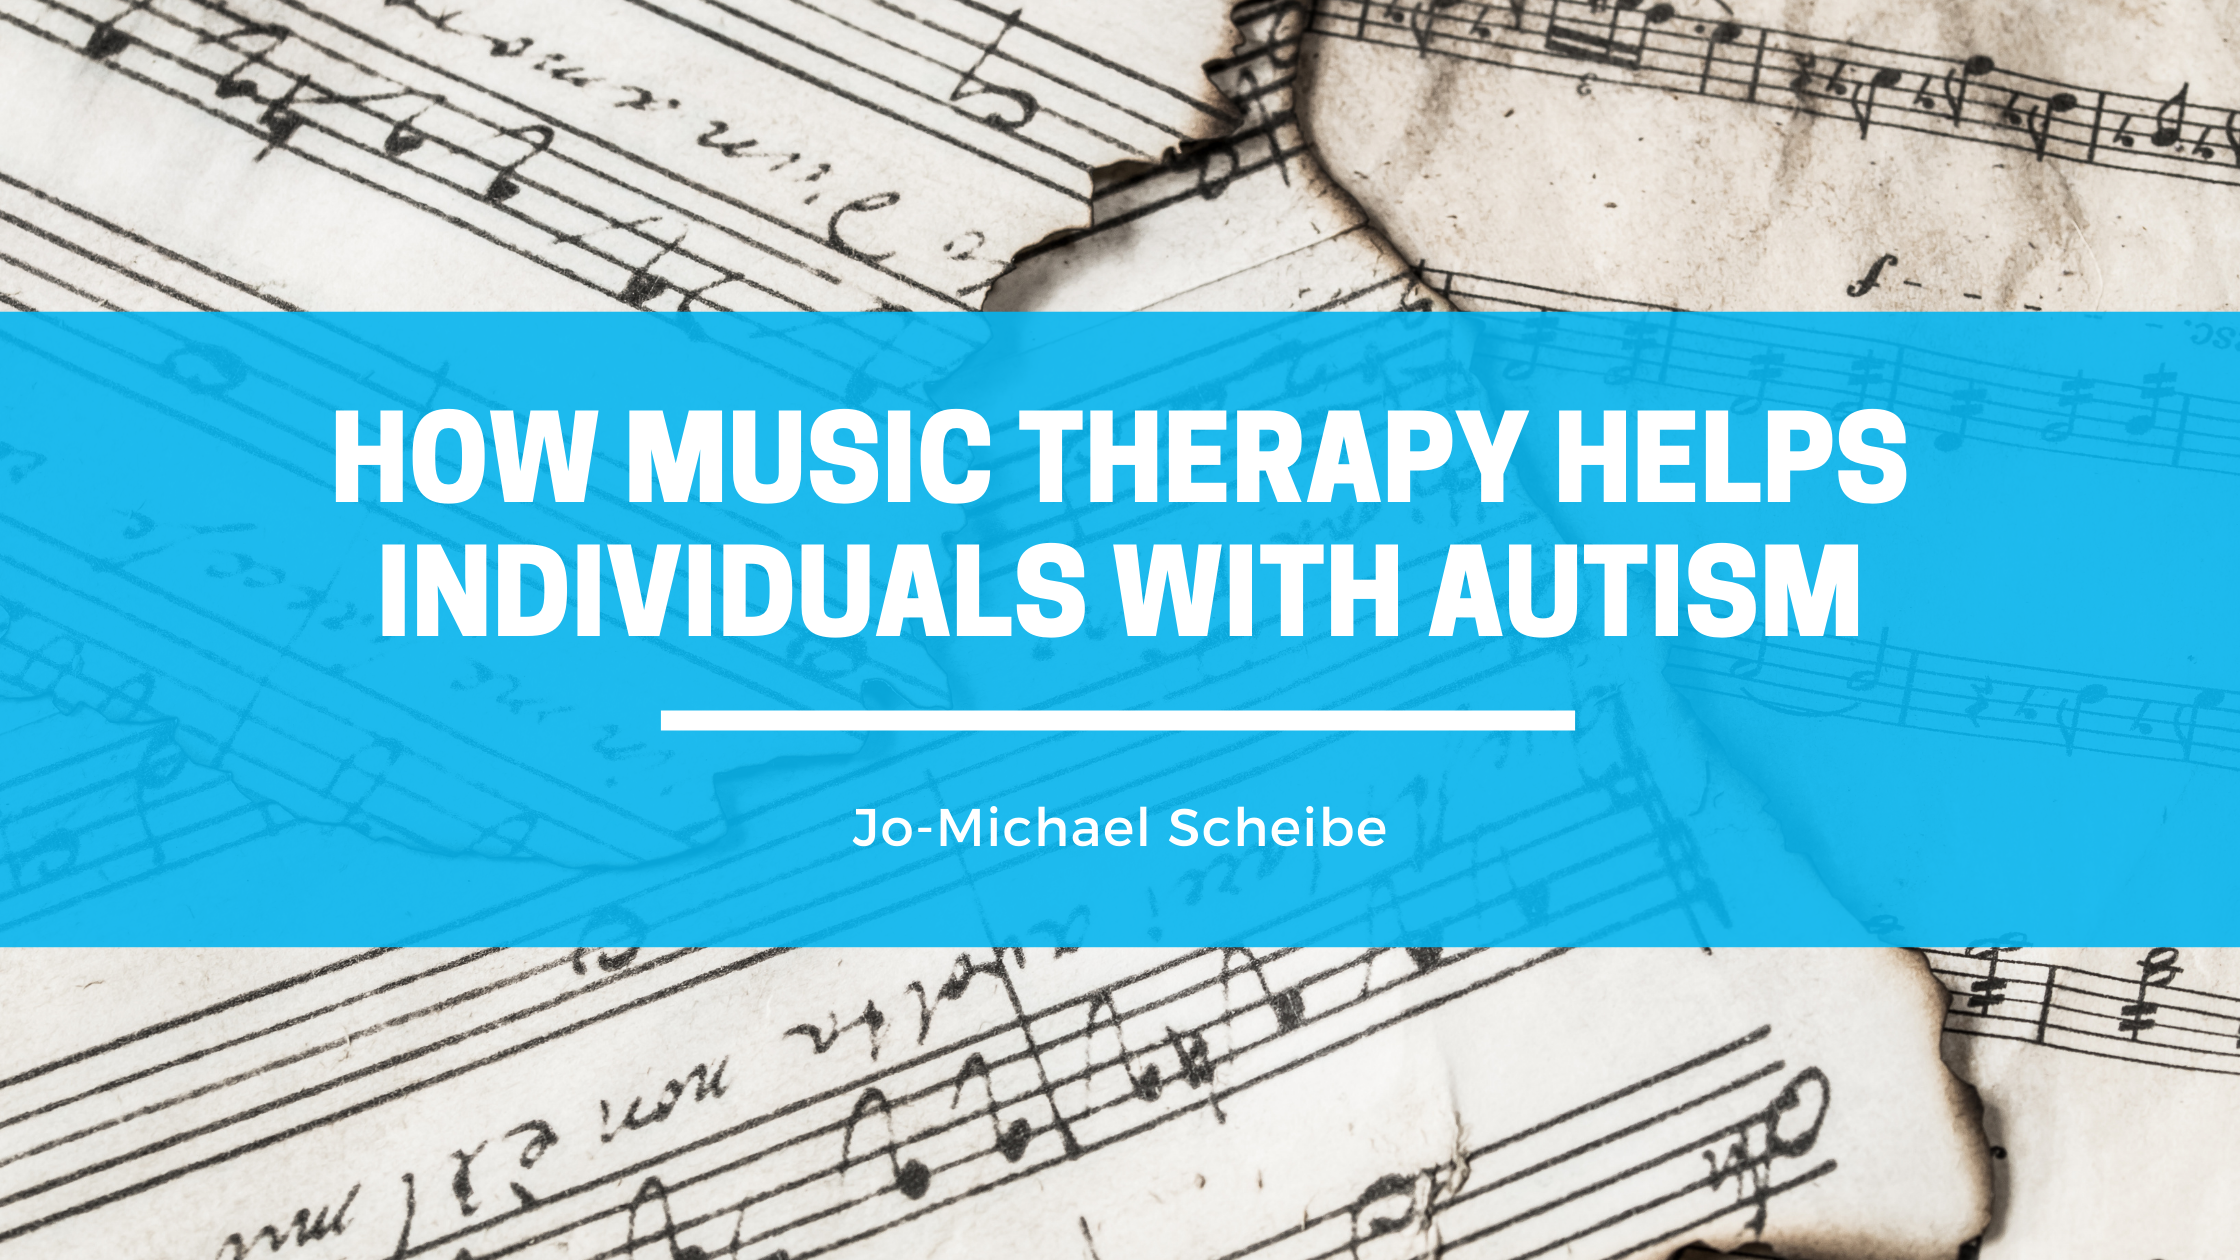 HOW MUSIC THERAPY HELPS INDIVIDUALS WITH AUTISM